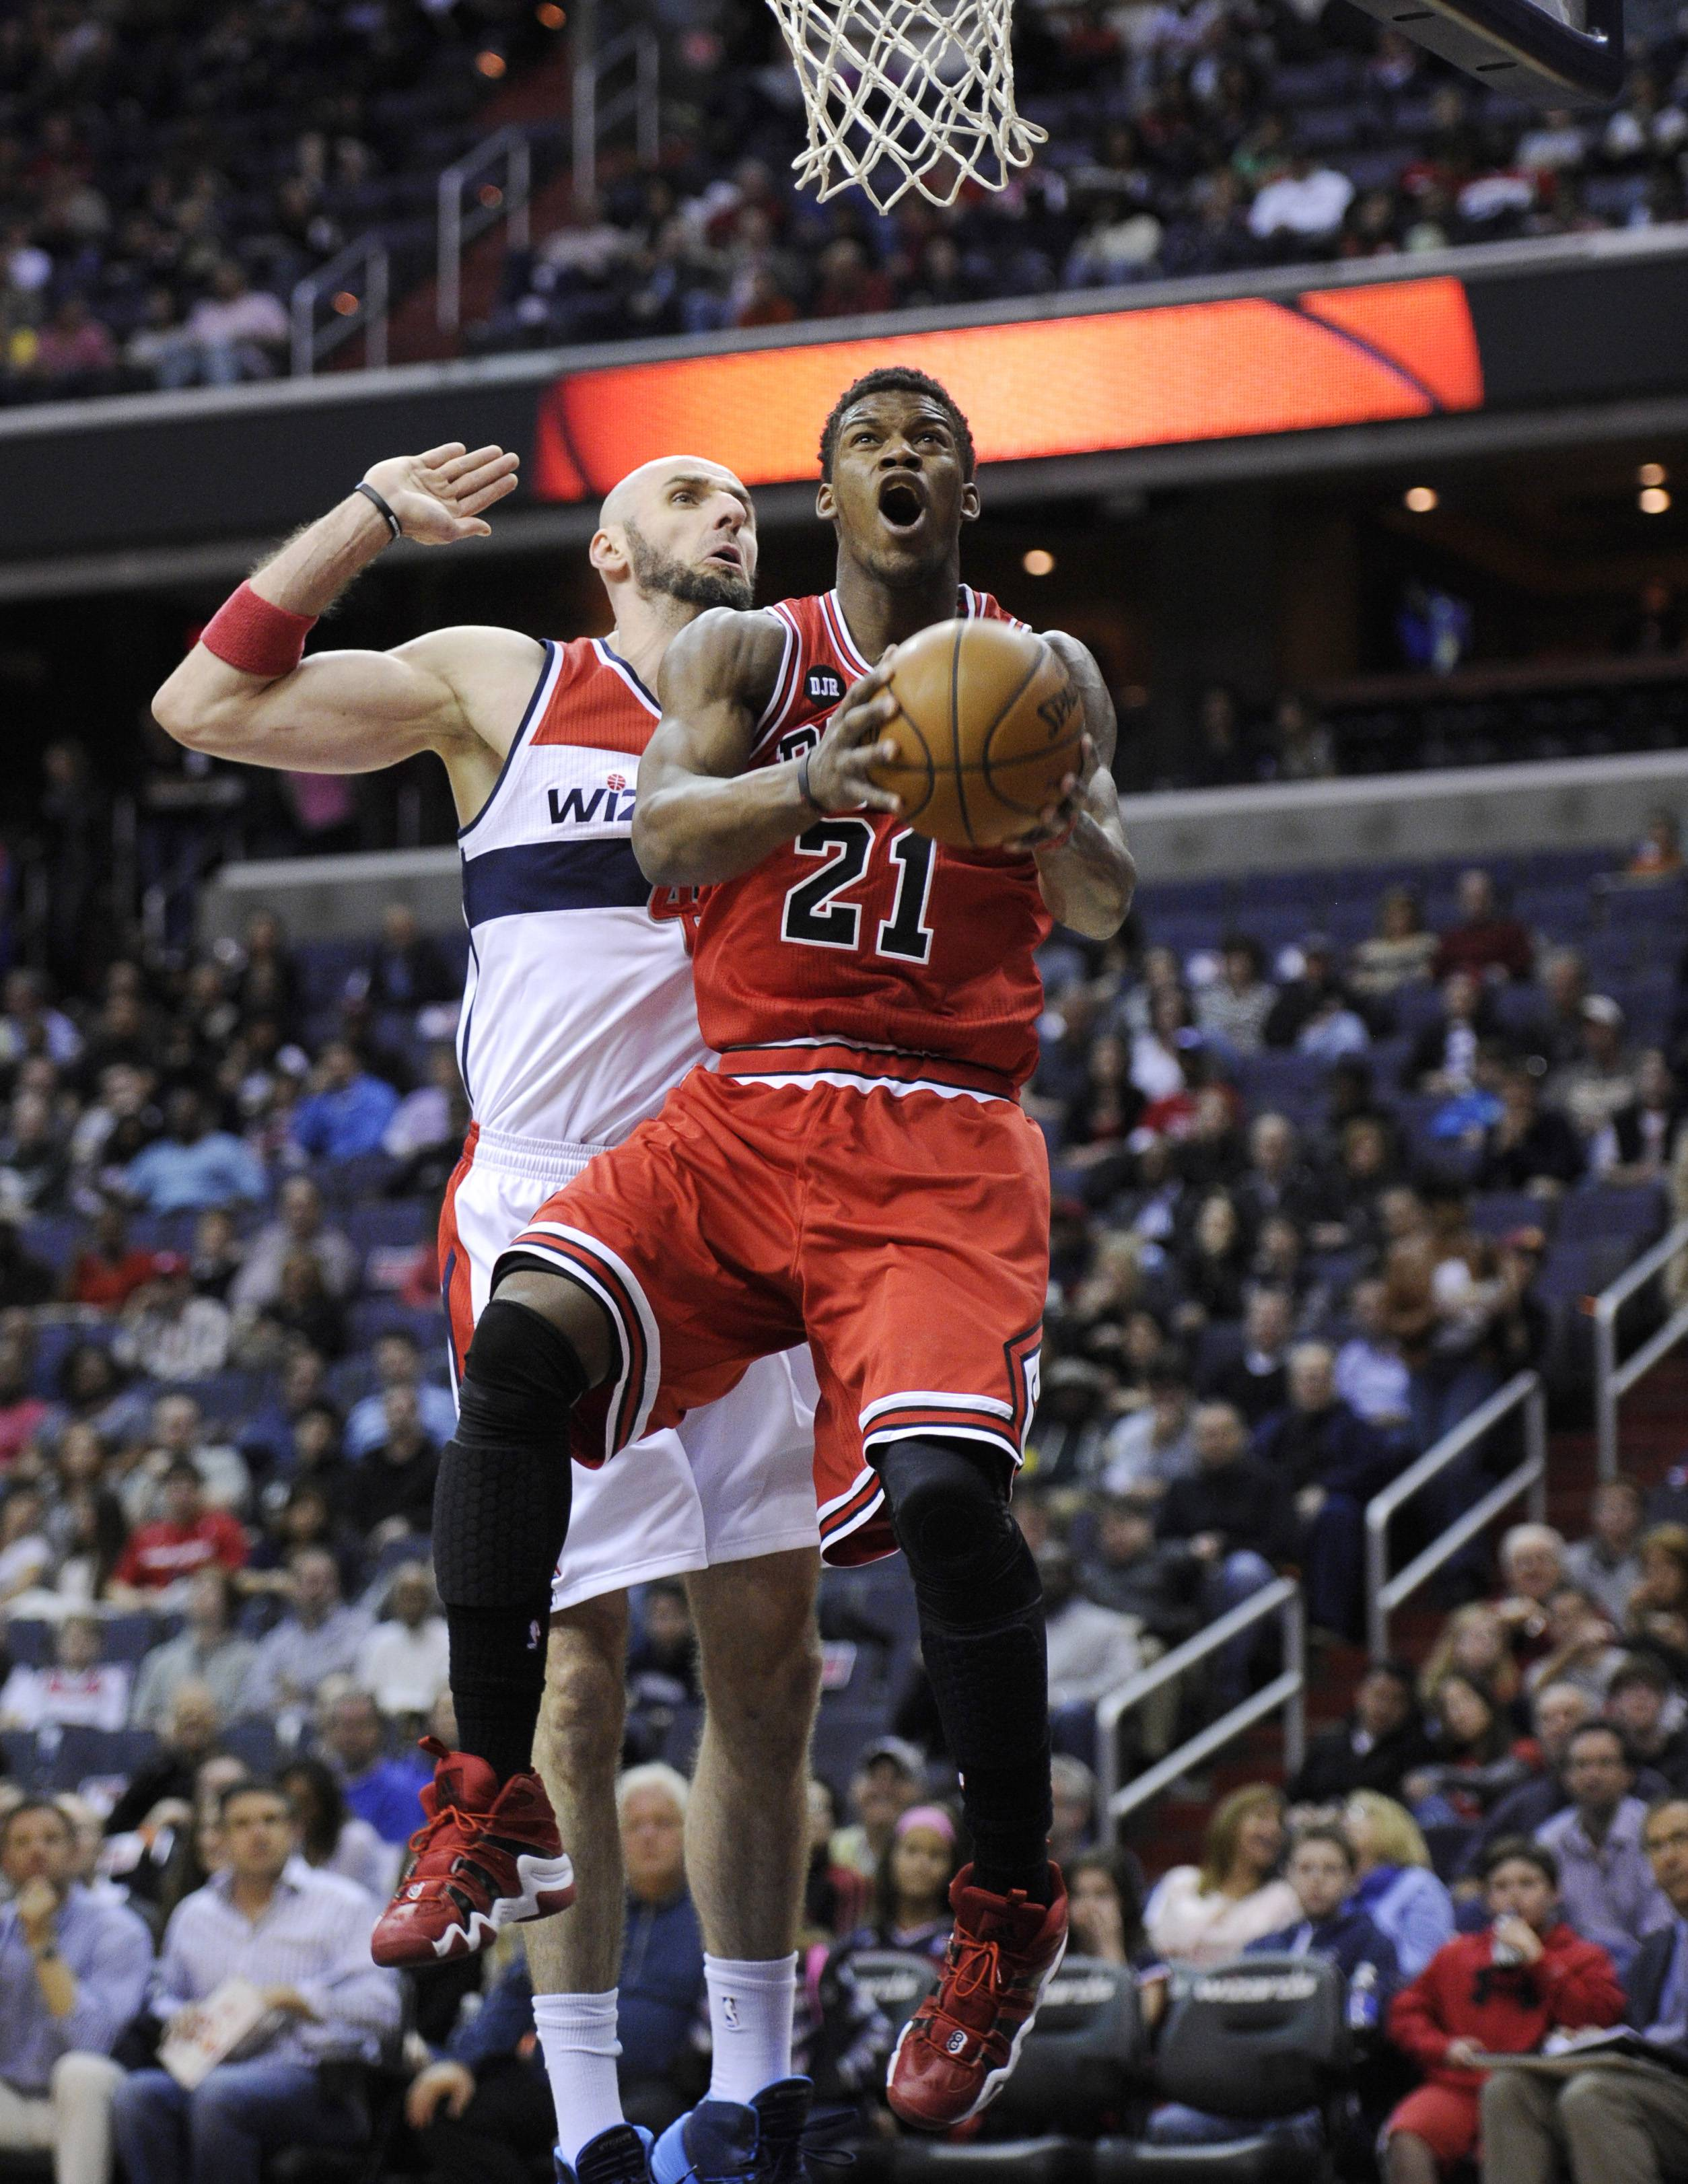 Bulls guard Jimmy Butler (21) goes to the basket against Washington Wizards center Marcin Gortat, back, of Poland, during the first half of an NBA basketball game, Saturday, April 5, 2014, in Washington.